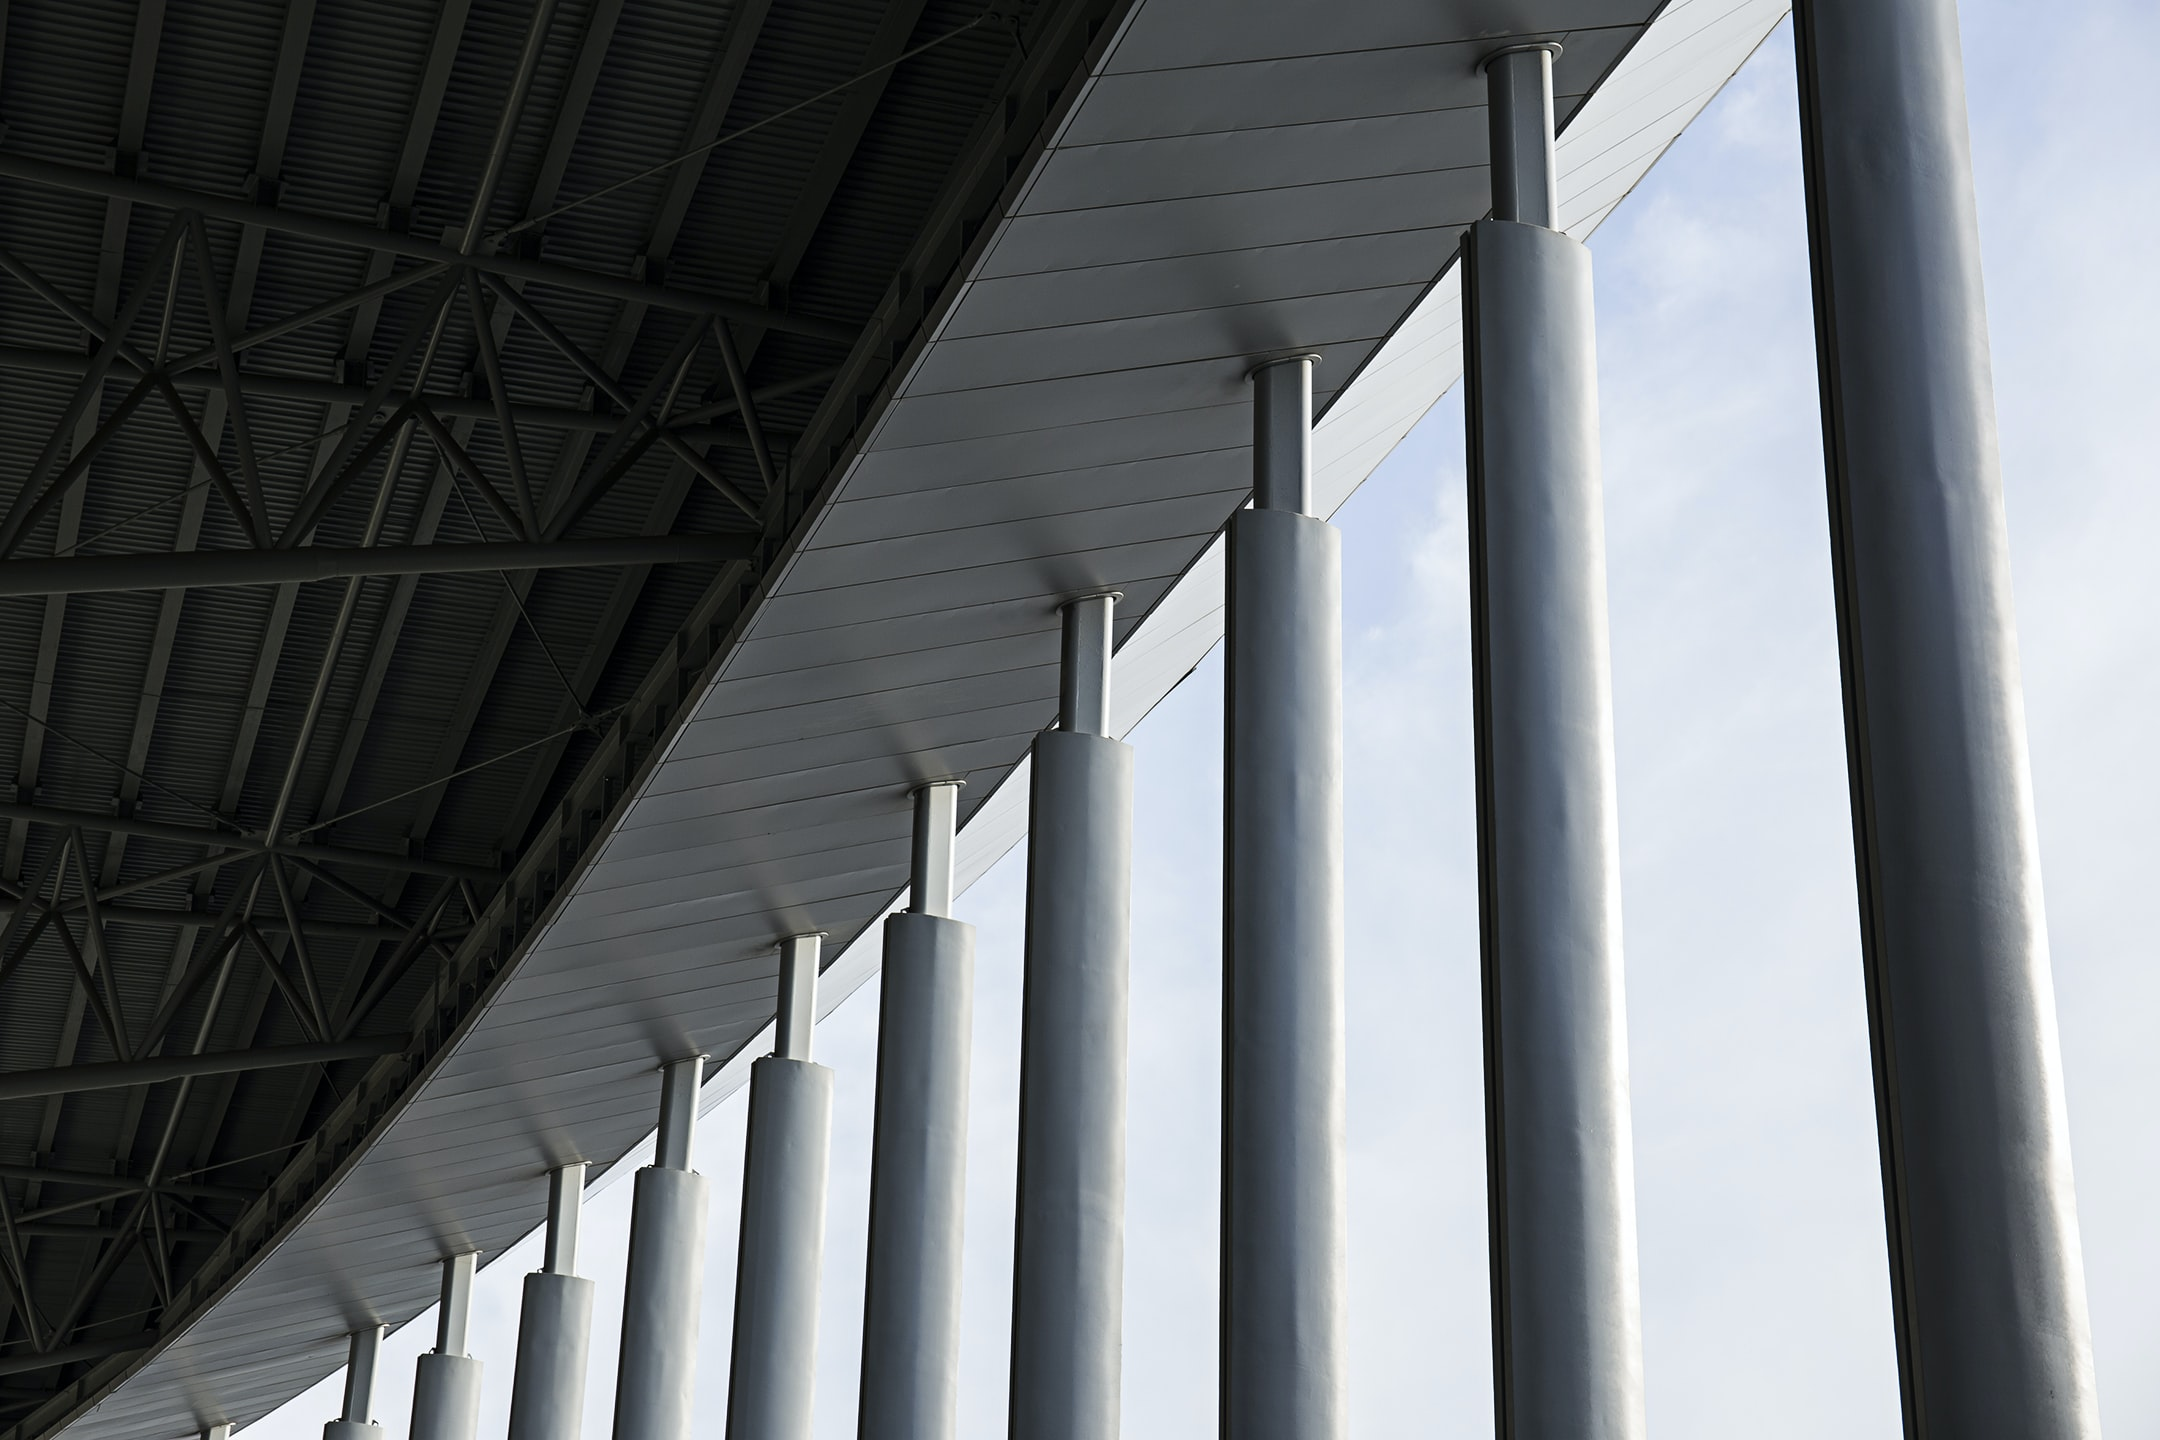 Large beams supporting the roof of a sports arena